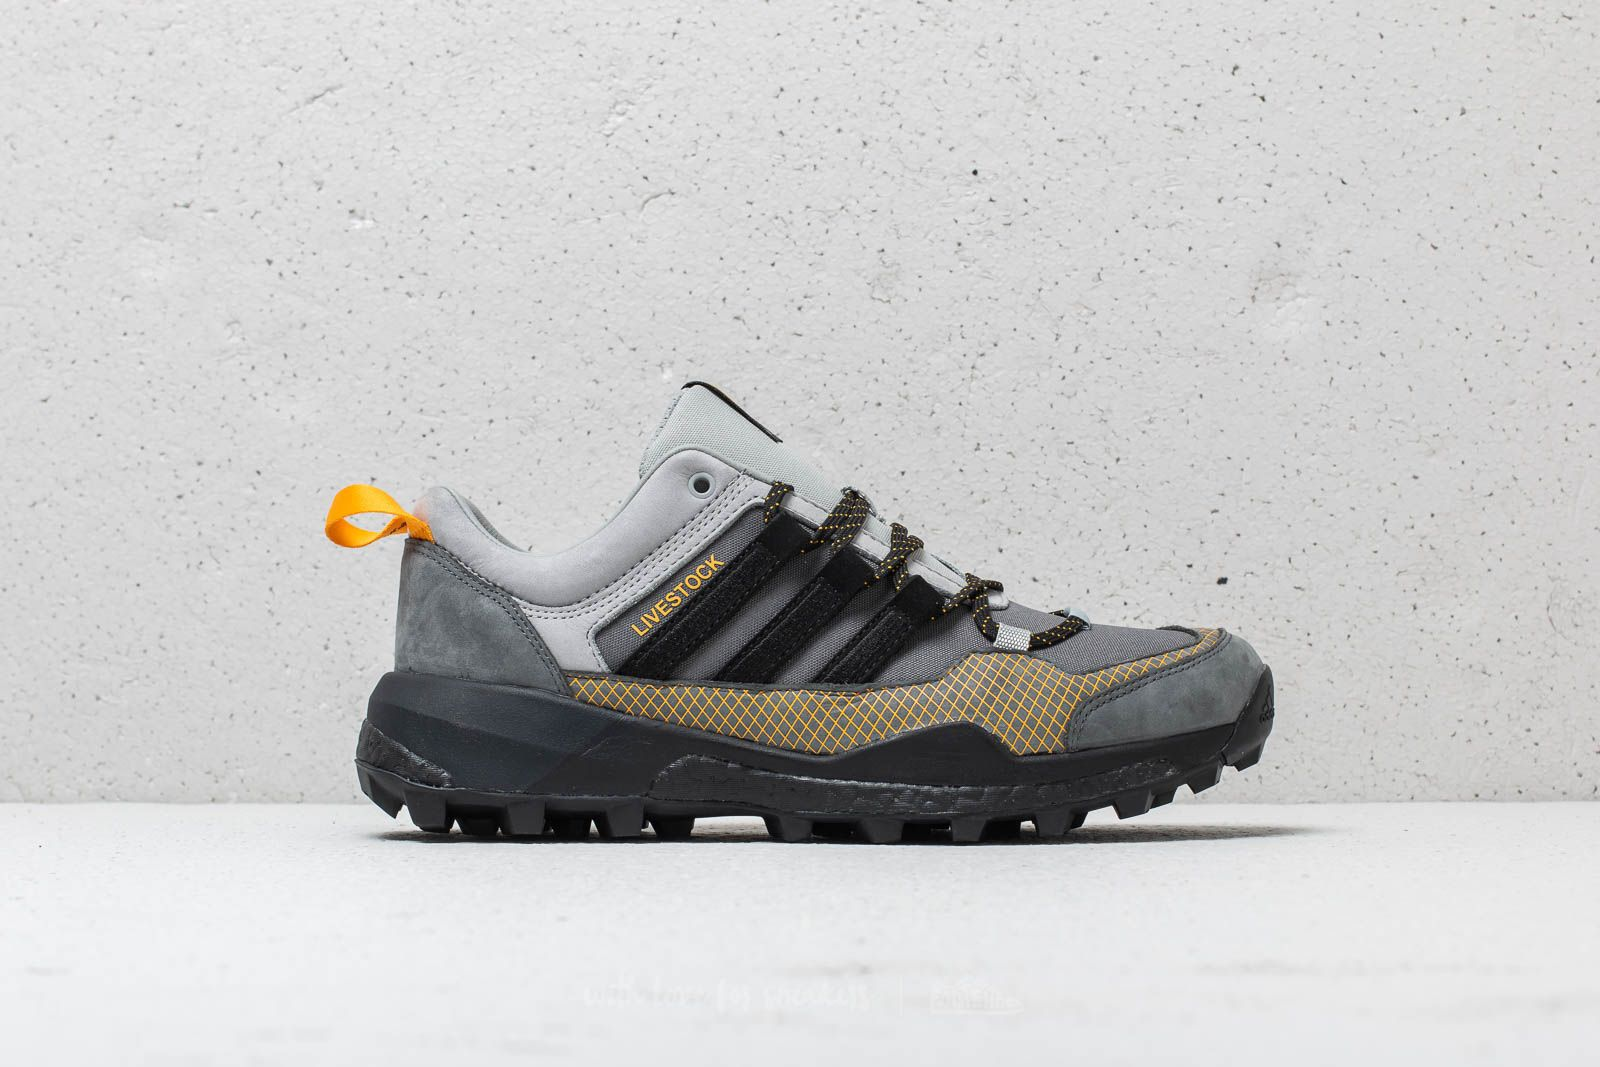 062c48e56262 adidas Consortium x Livestock Terrex Skychaser Stone  Core Black  Grey Five  at a great